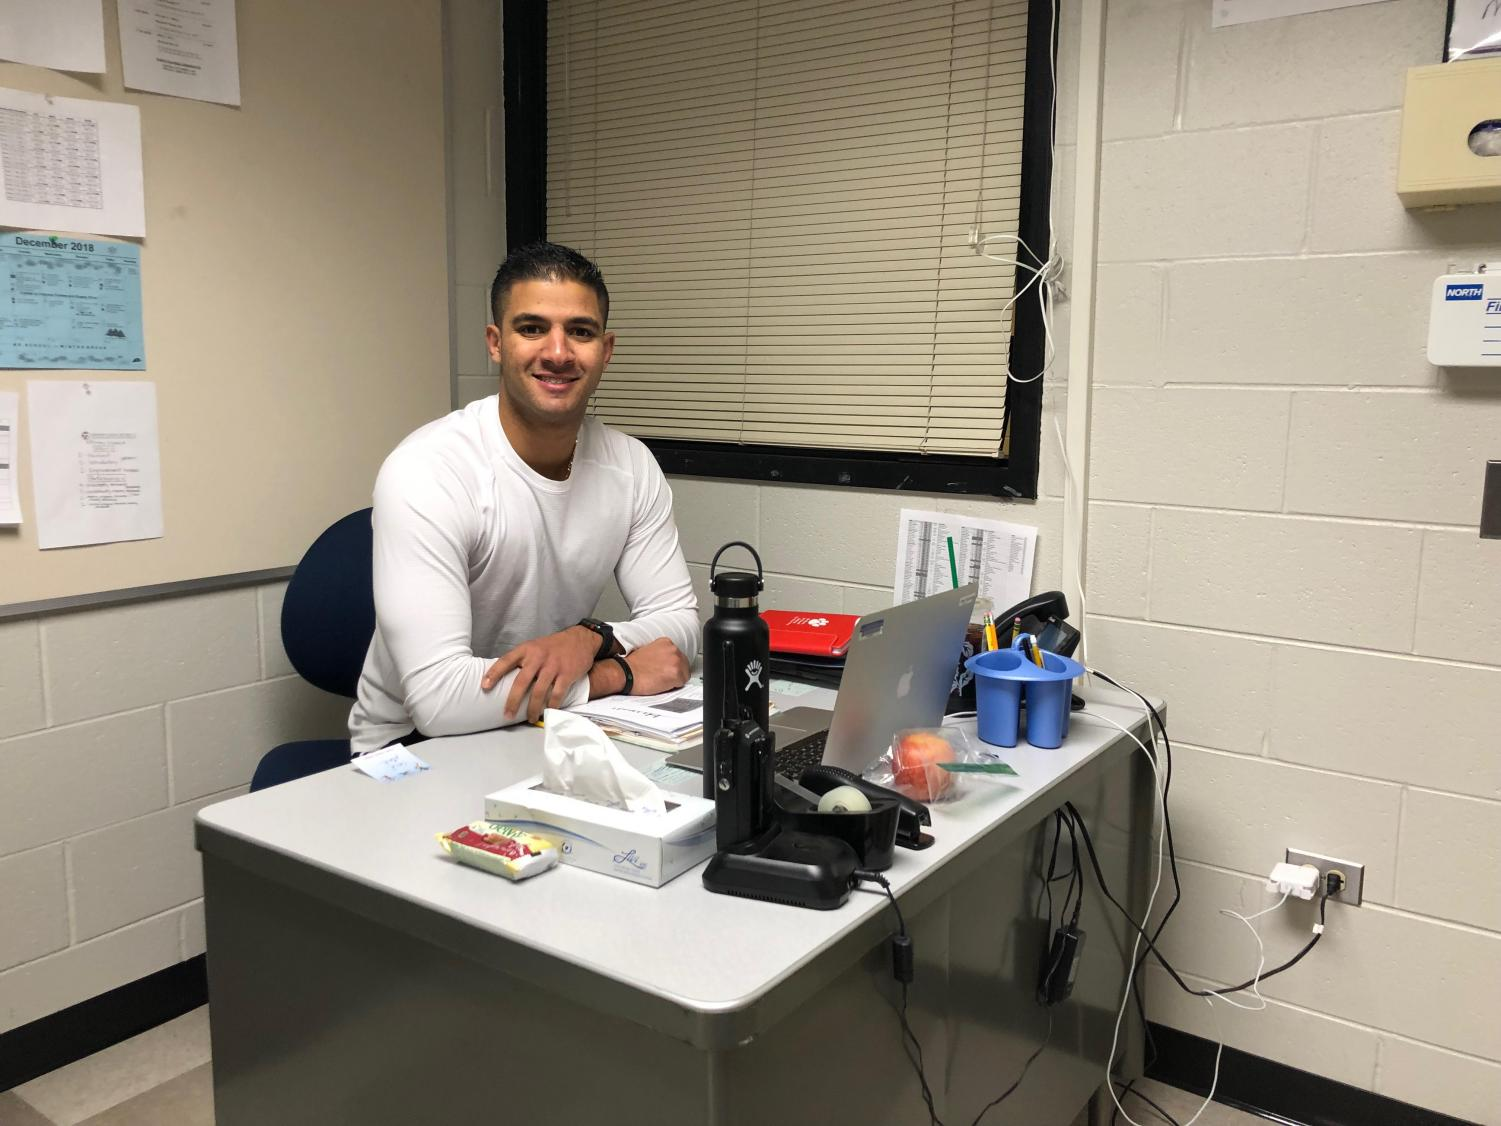 Niles West alum Amir Fakhoury is excited to teach at his former elementary school, Fairview South.